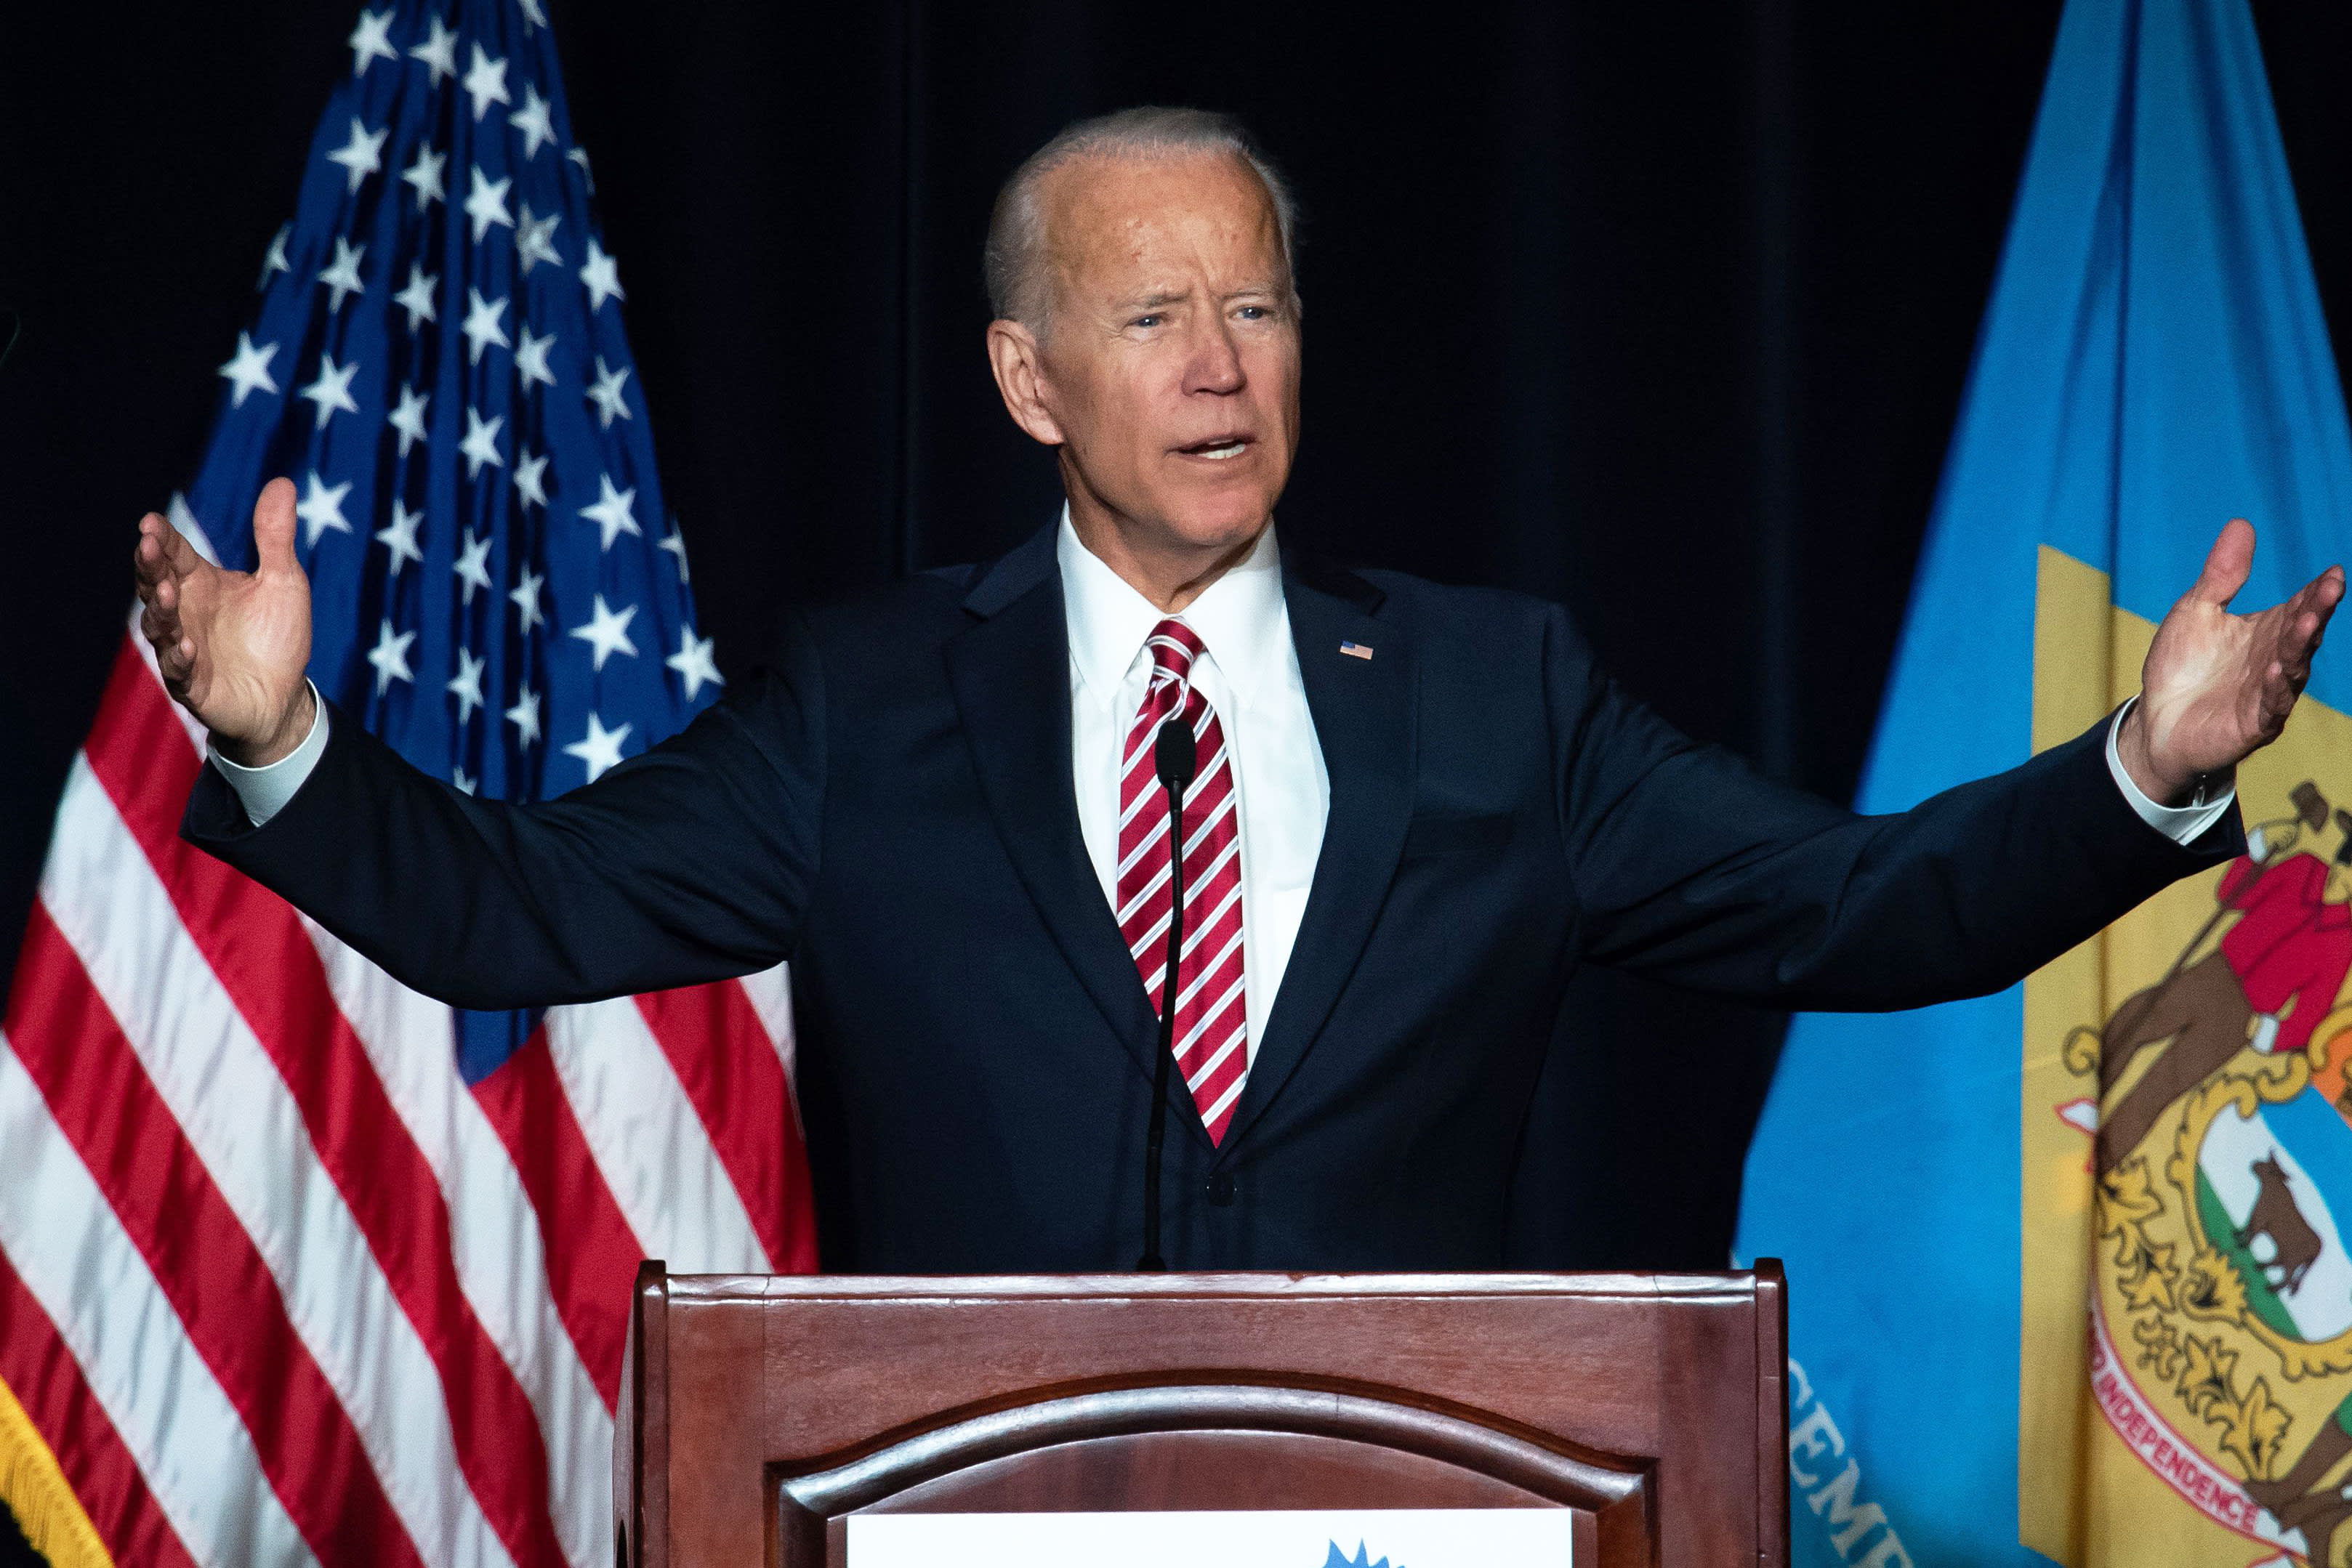 Biden hires over a dozen senior advisors from Obama administration for 2020 campaign: Sources